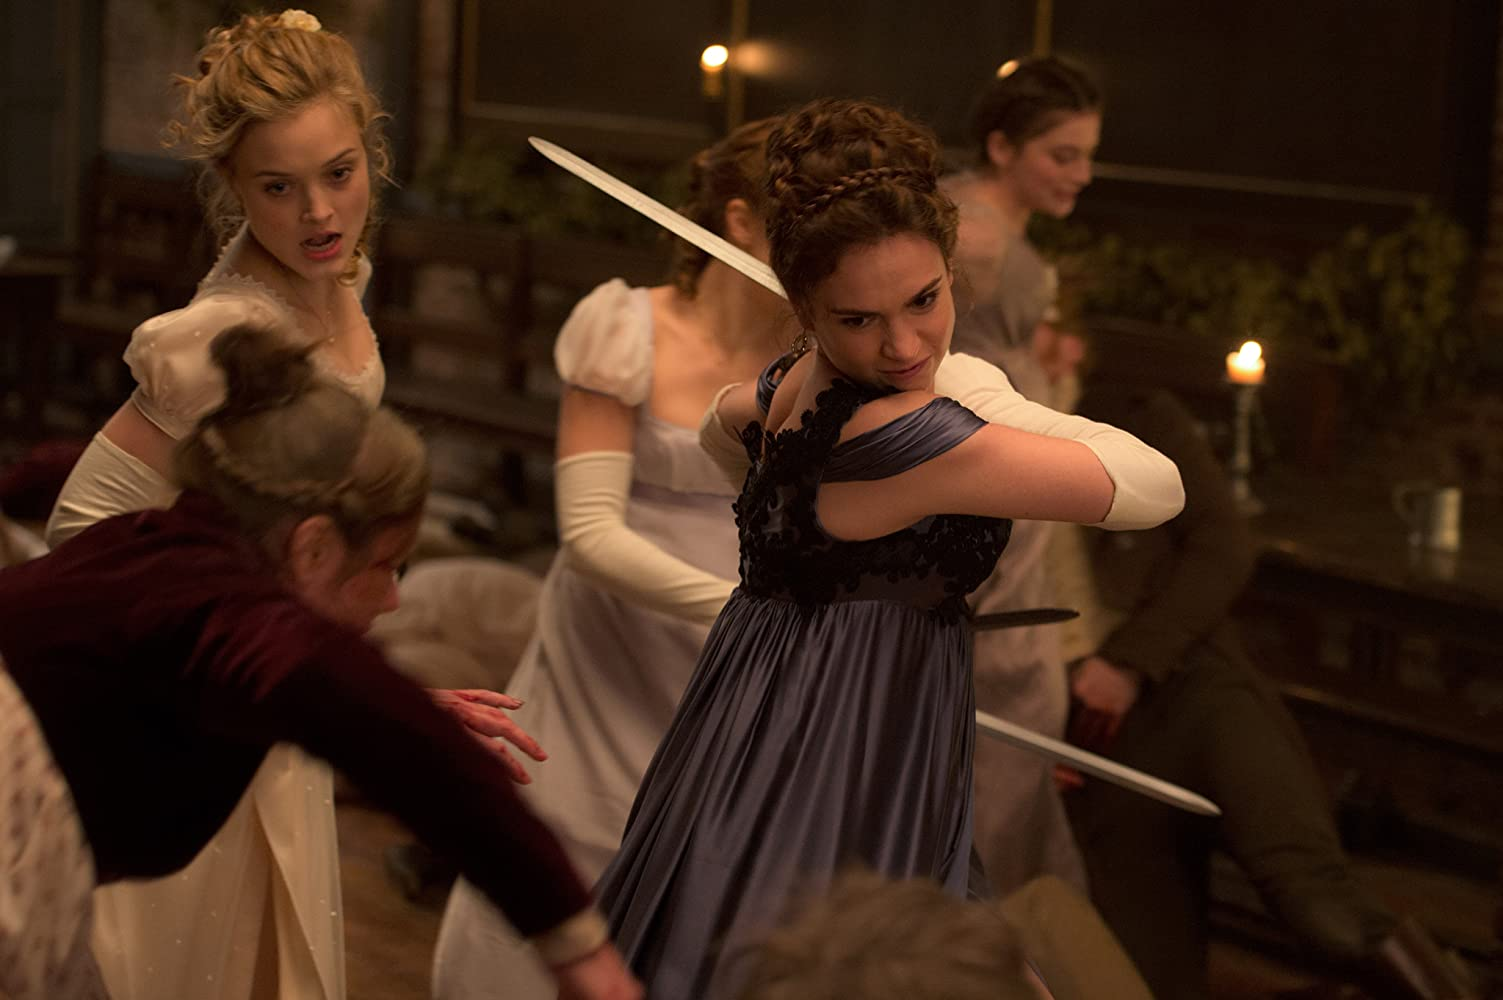 Bella Heathcote, Suki Waterhouse, Lily James, Ellie Bamber, and Millie Brady in Pride and Prejudice and Zombies (2016)